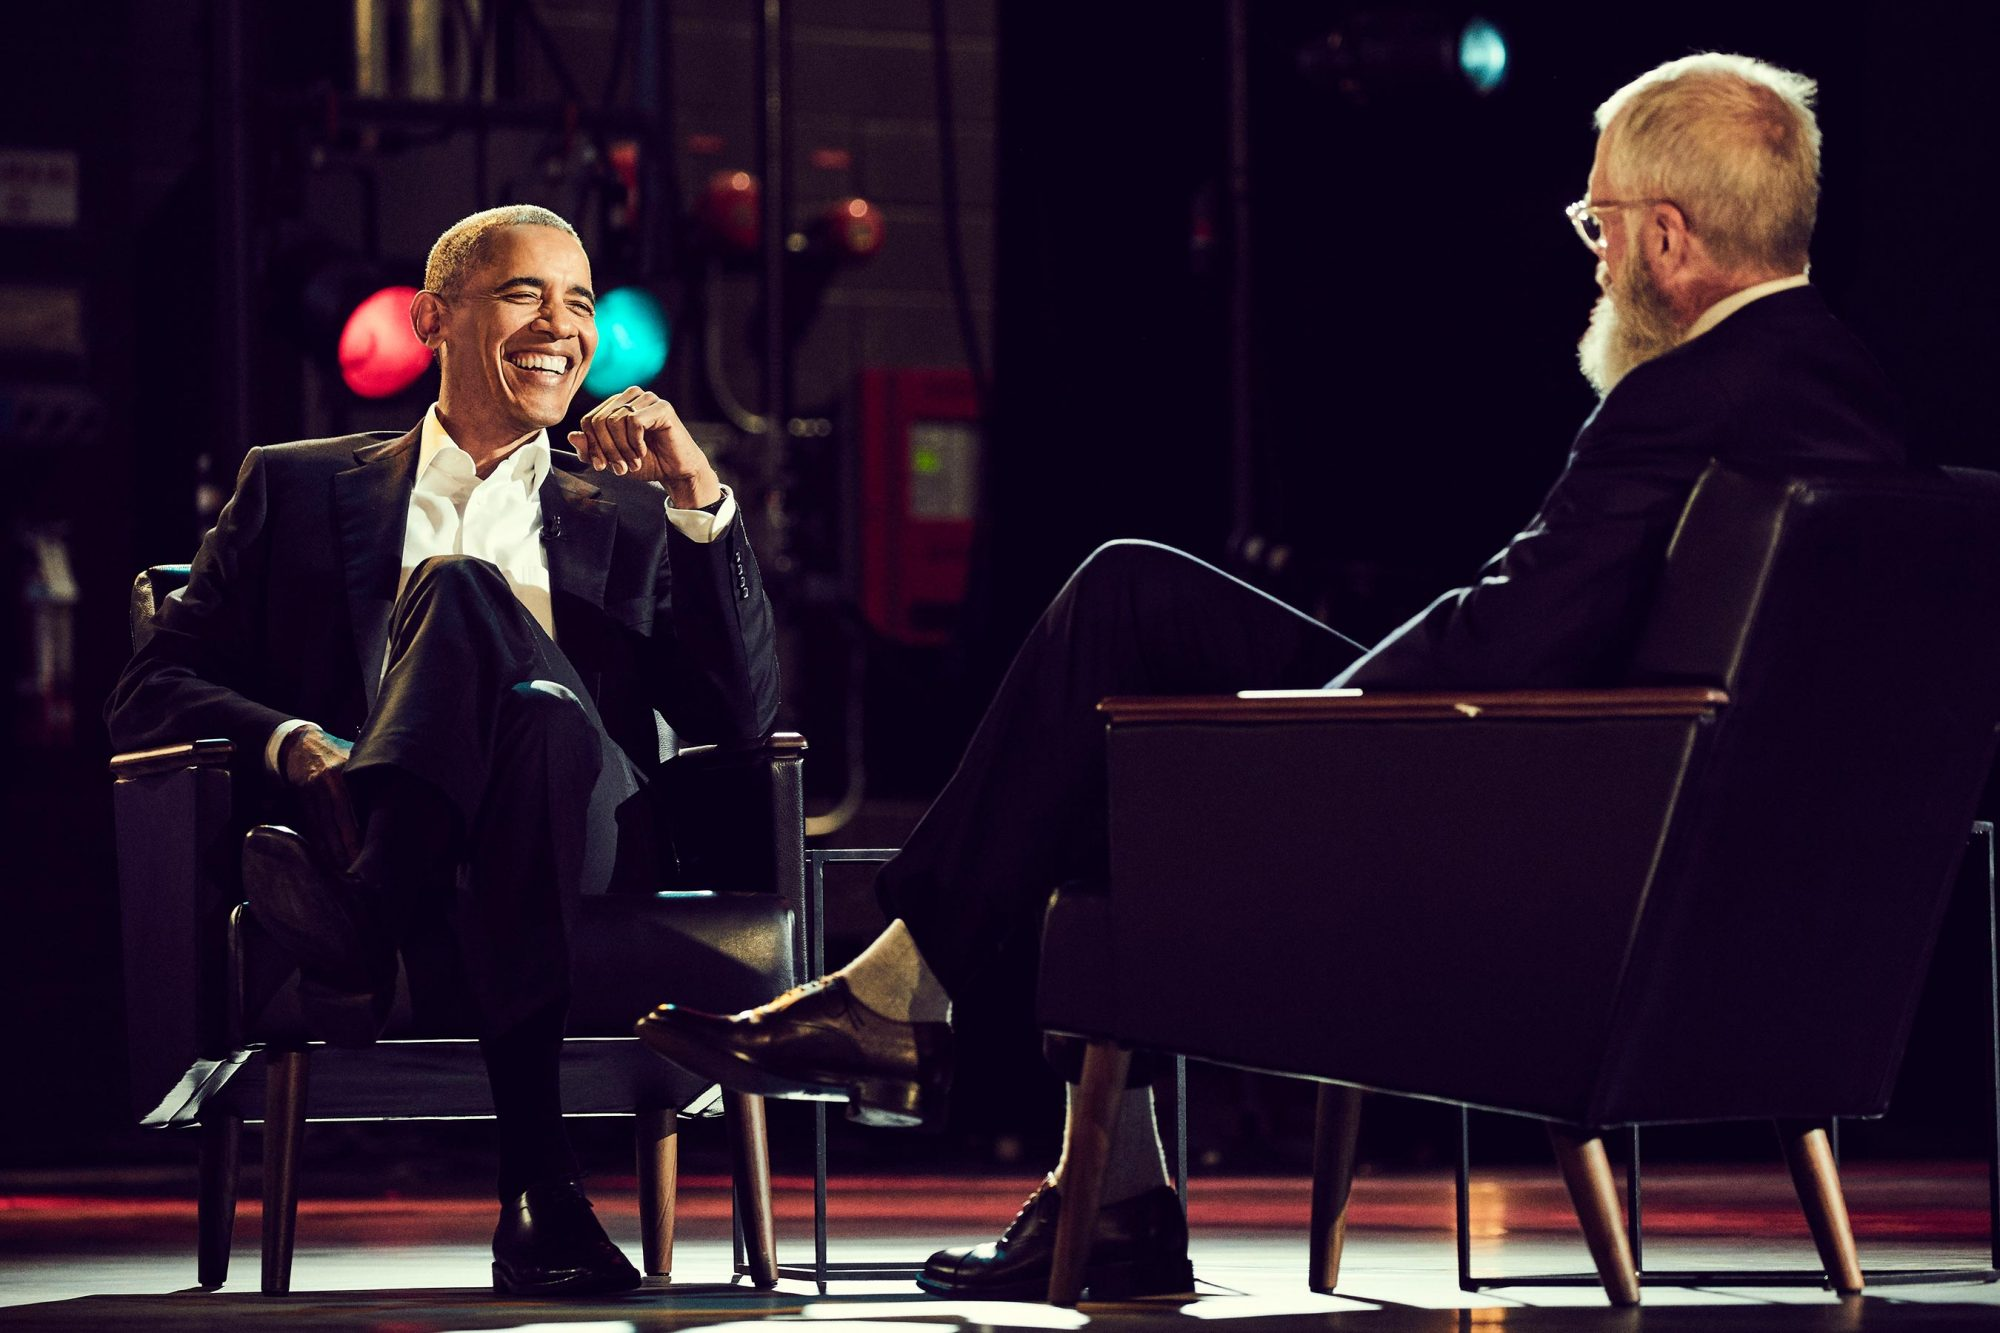 Obama on My Next Guest Needs No Introduction with David Letterman: Season 1